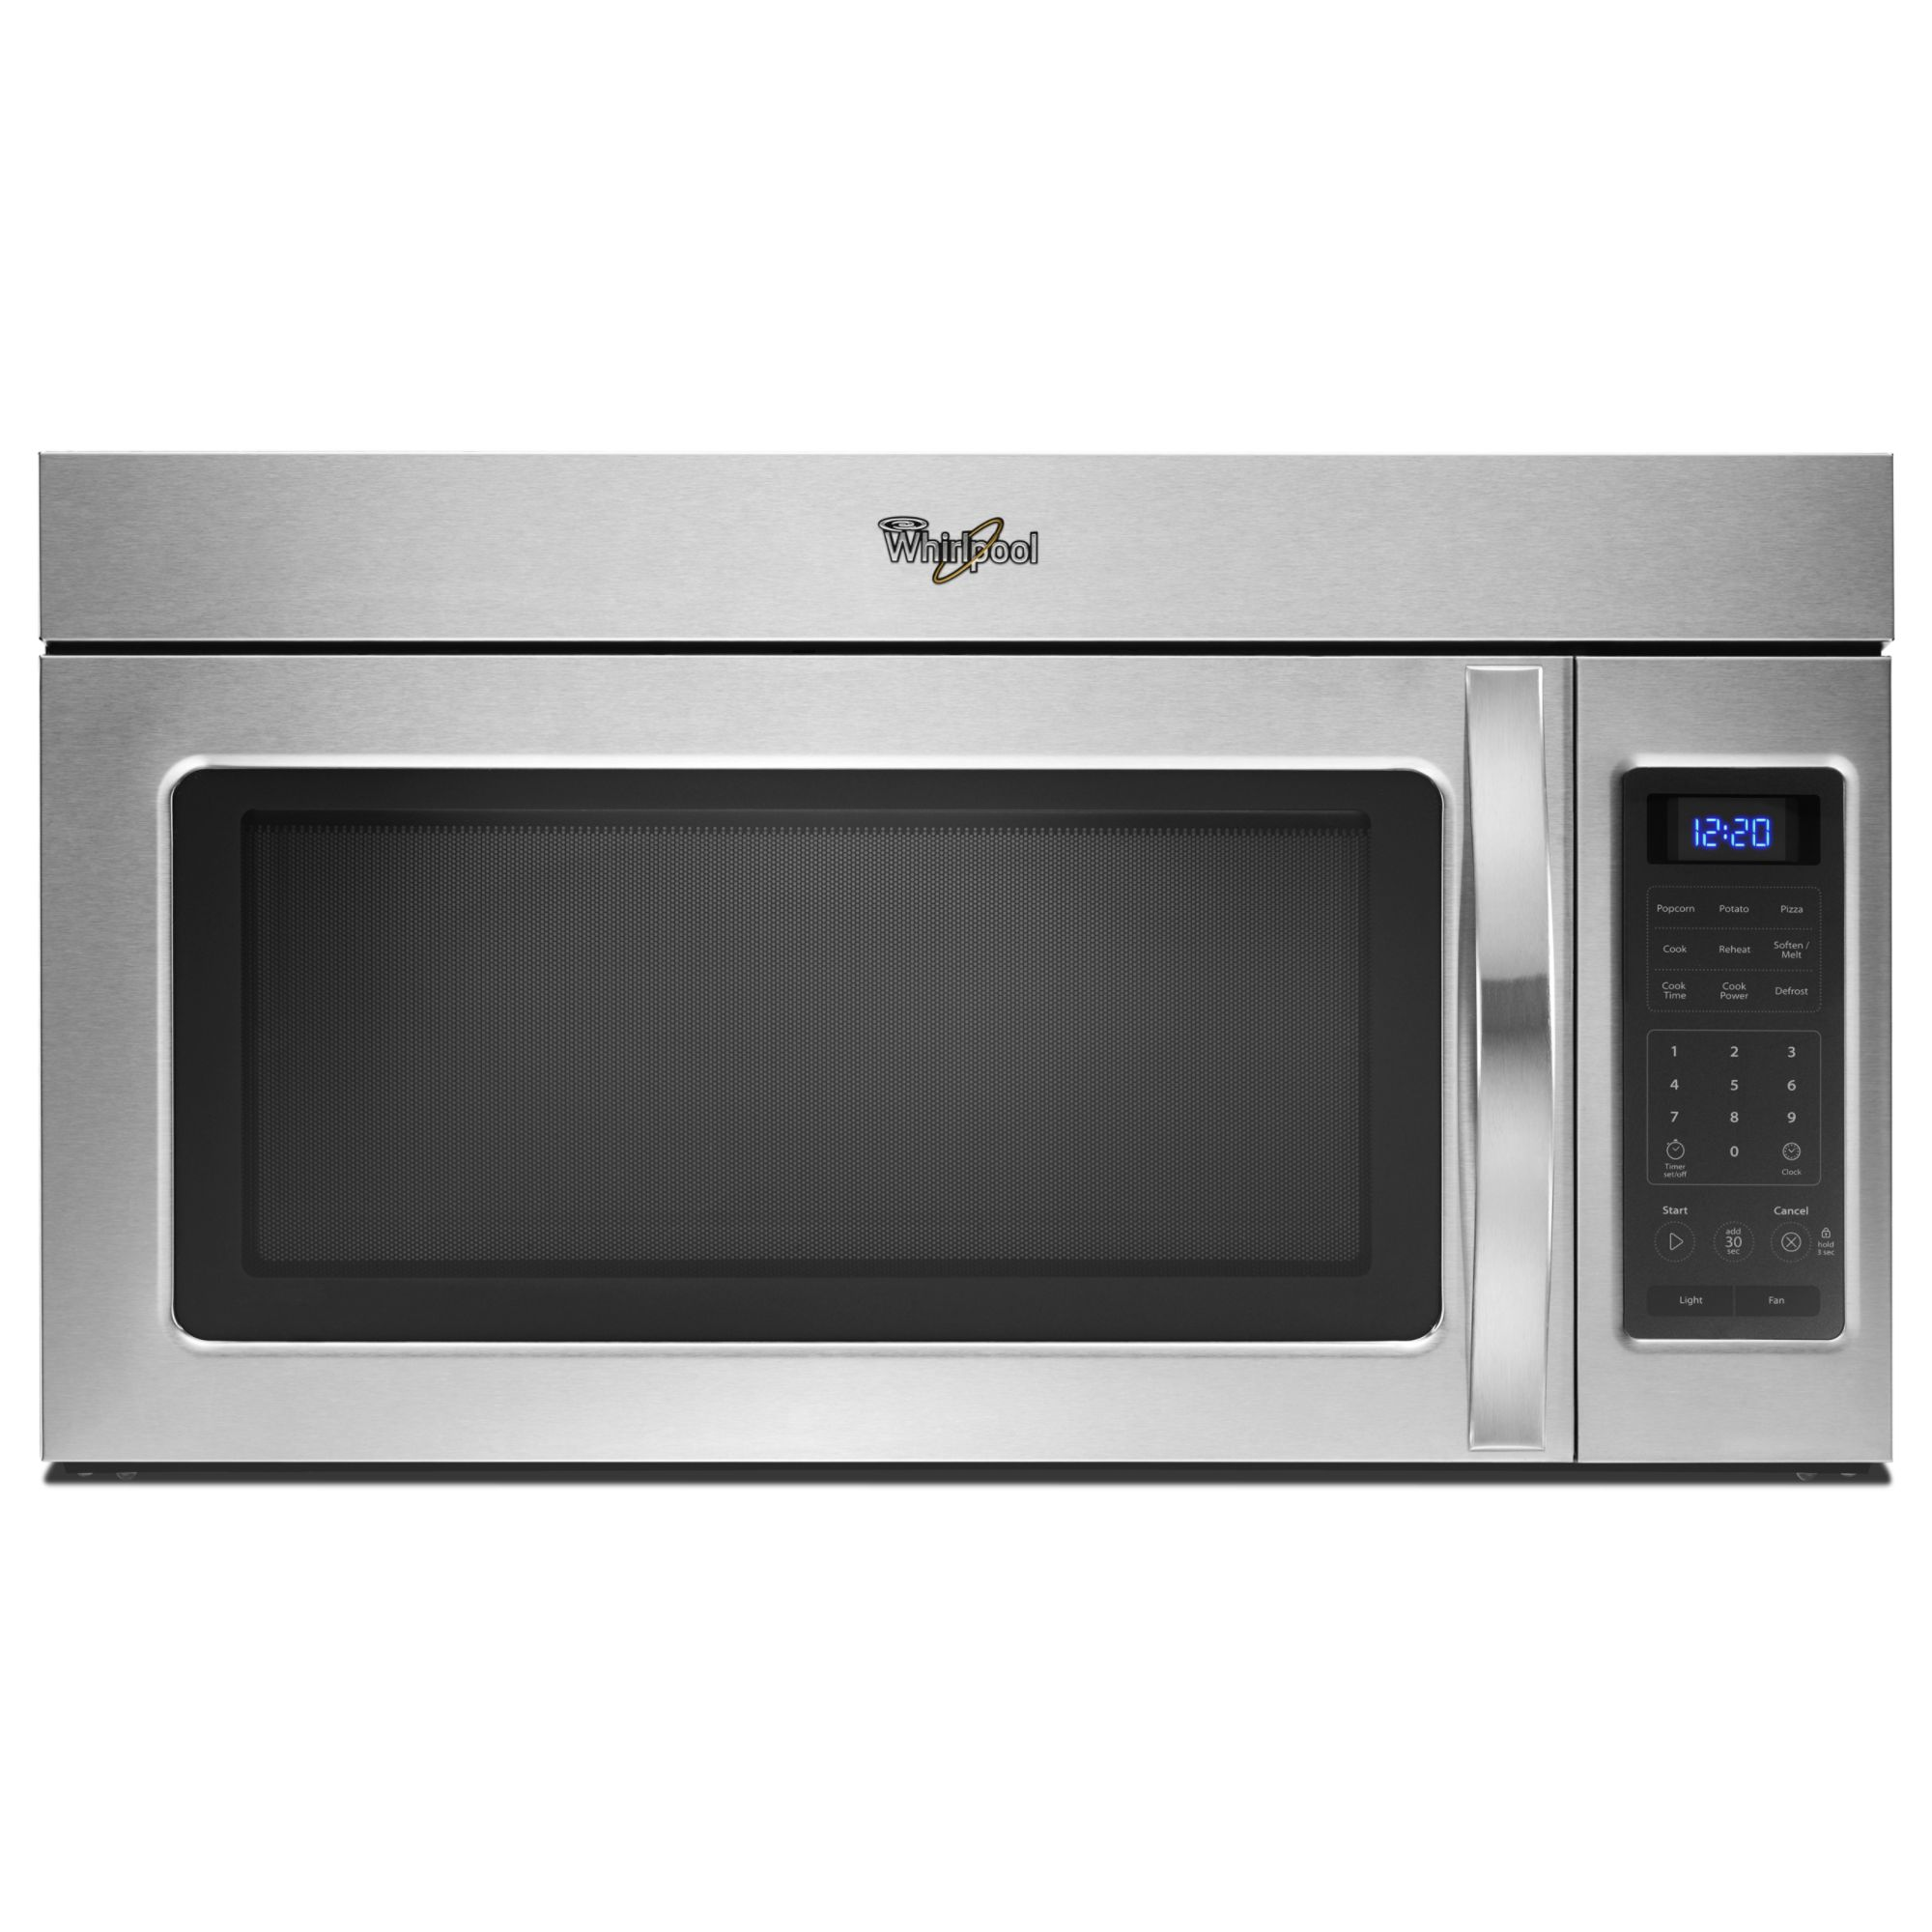 Whirlpool WMH31017AS 30 in. Over the Range Microwave w/ 2-Speed Fan - Stainless Steel